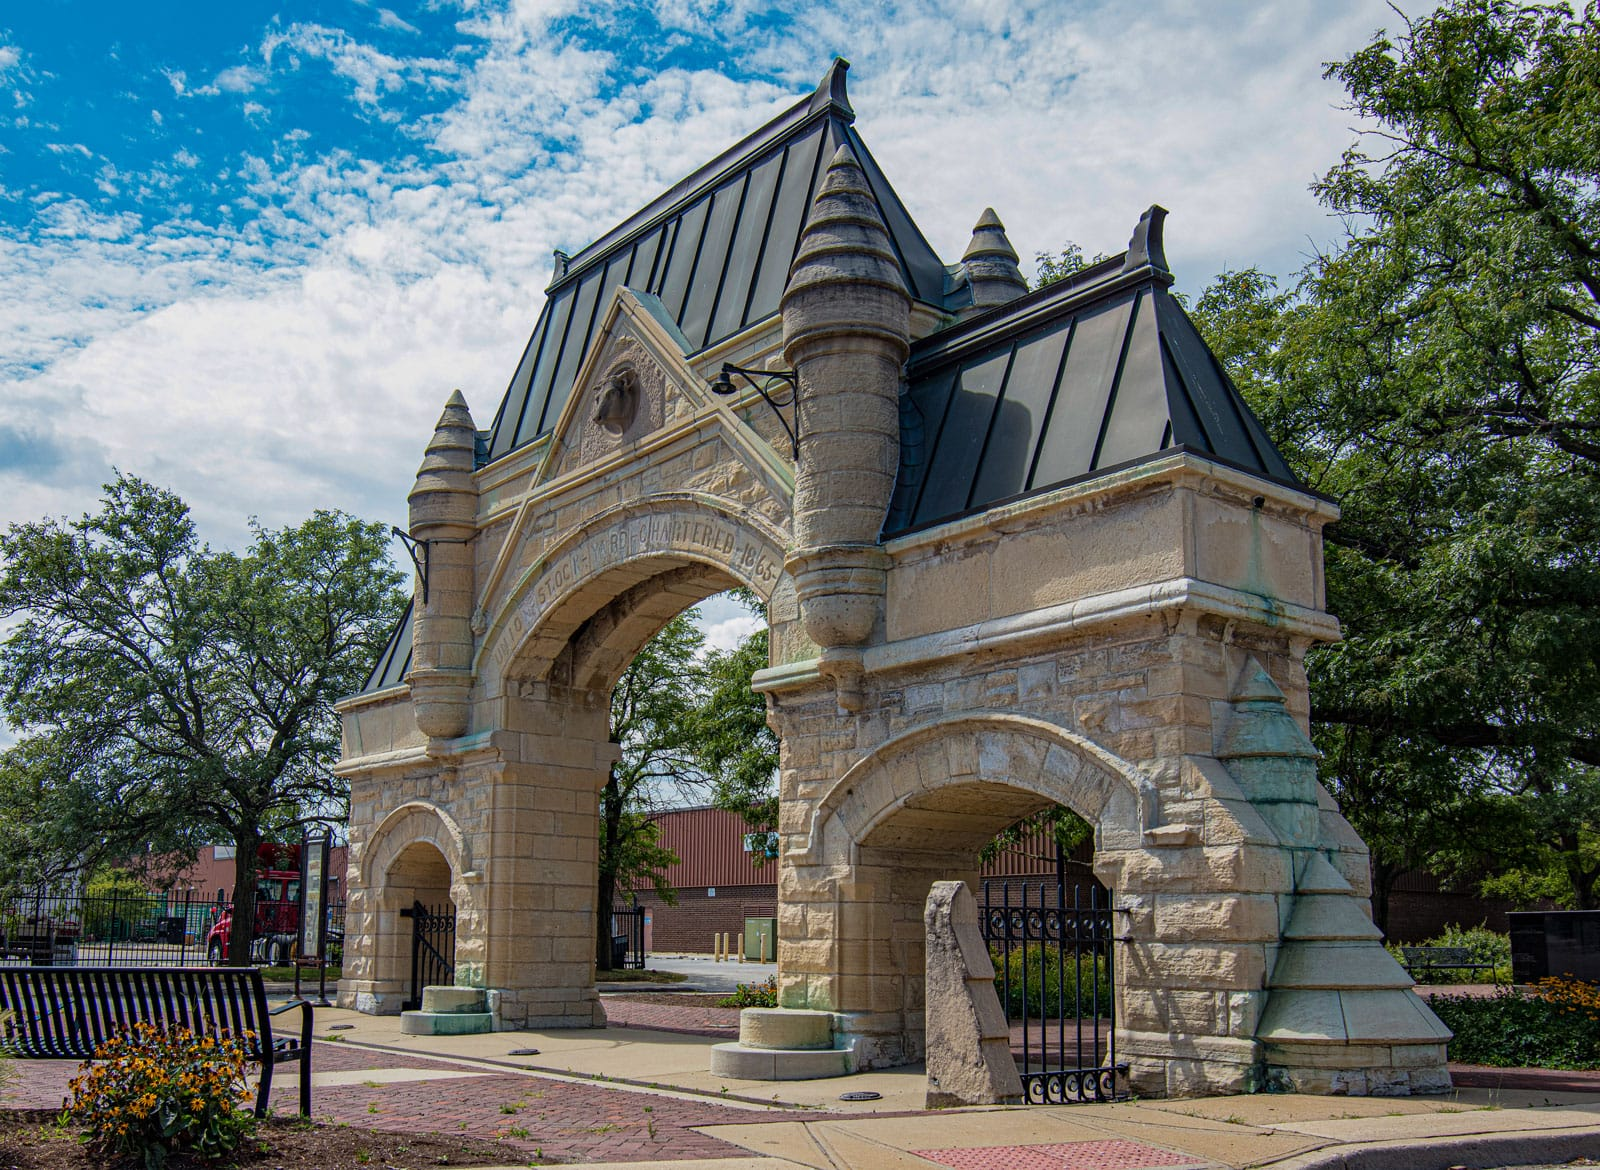 The original Union Stockyards gate from 1875 in Chicago at Exchange Avenue and Peoria Street